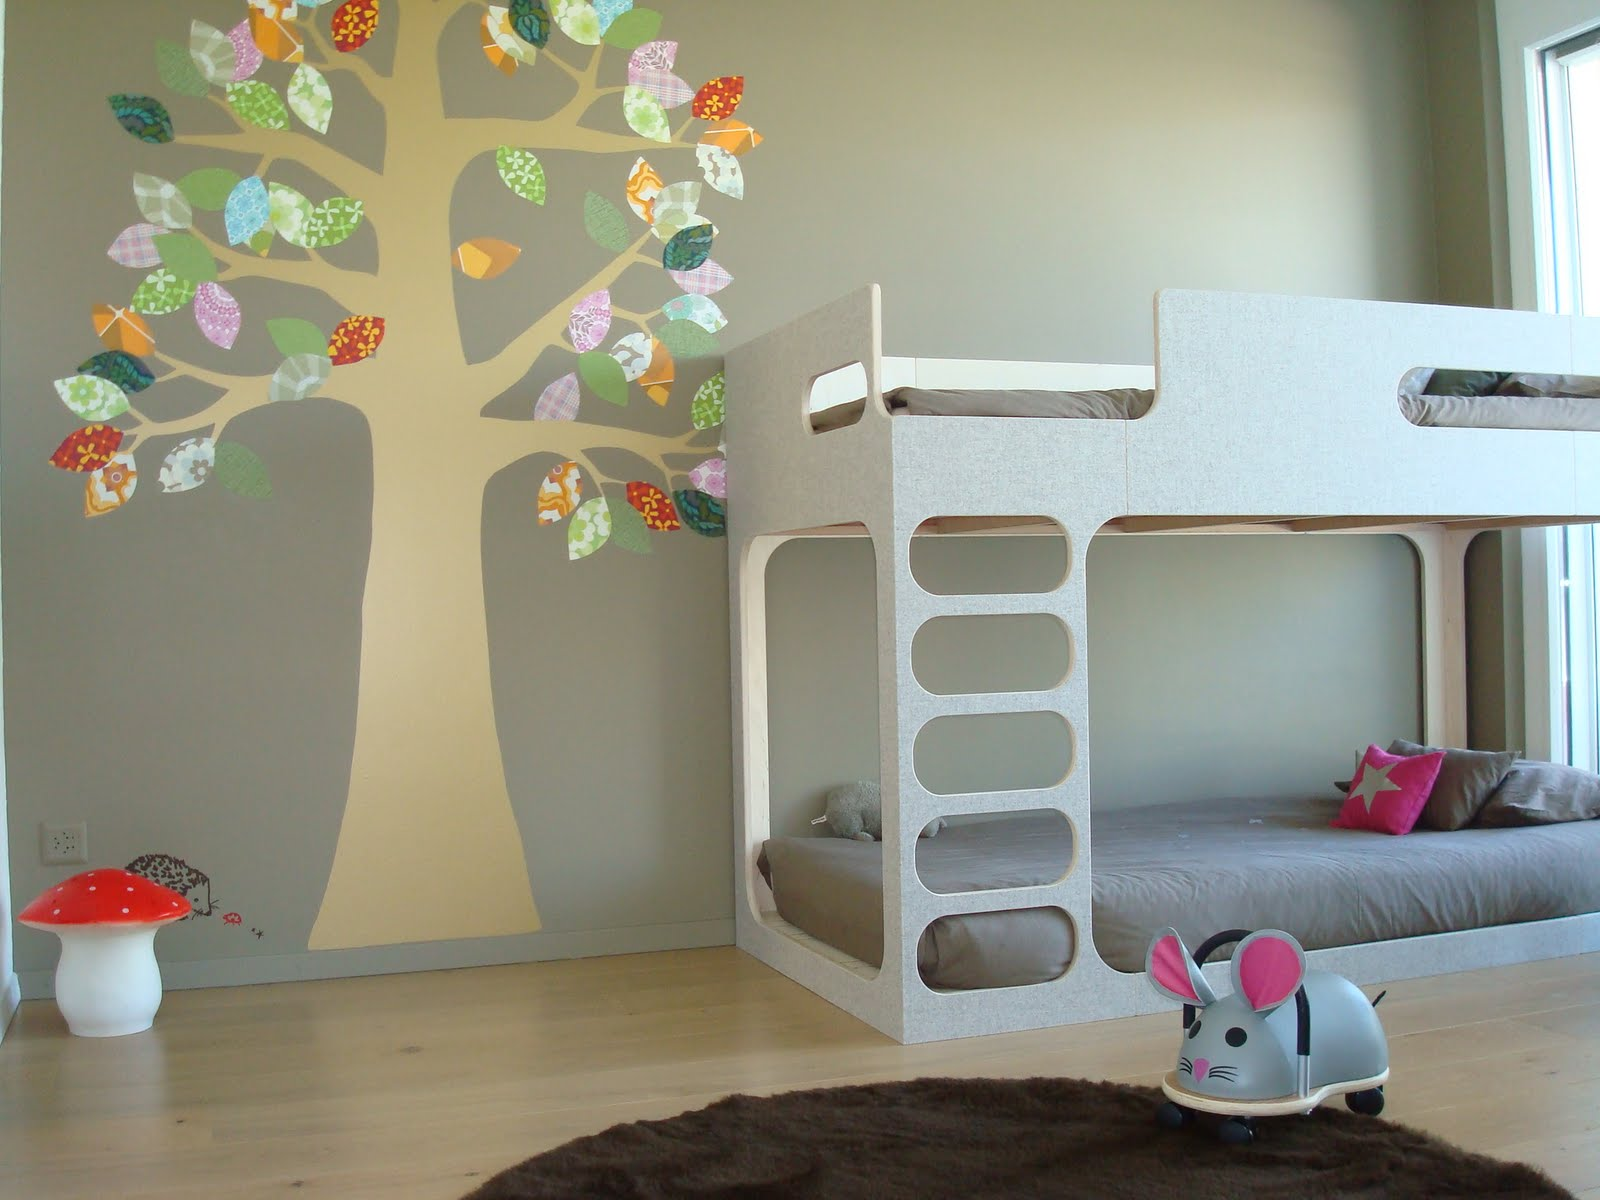 Childrens bedroom wallpaper ideas home decor uk for Children bedroom ideas